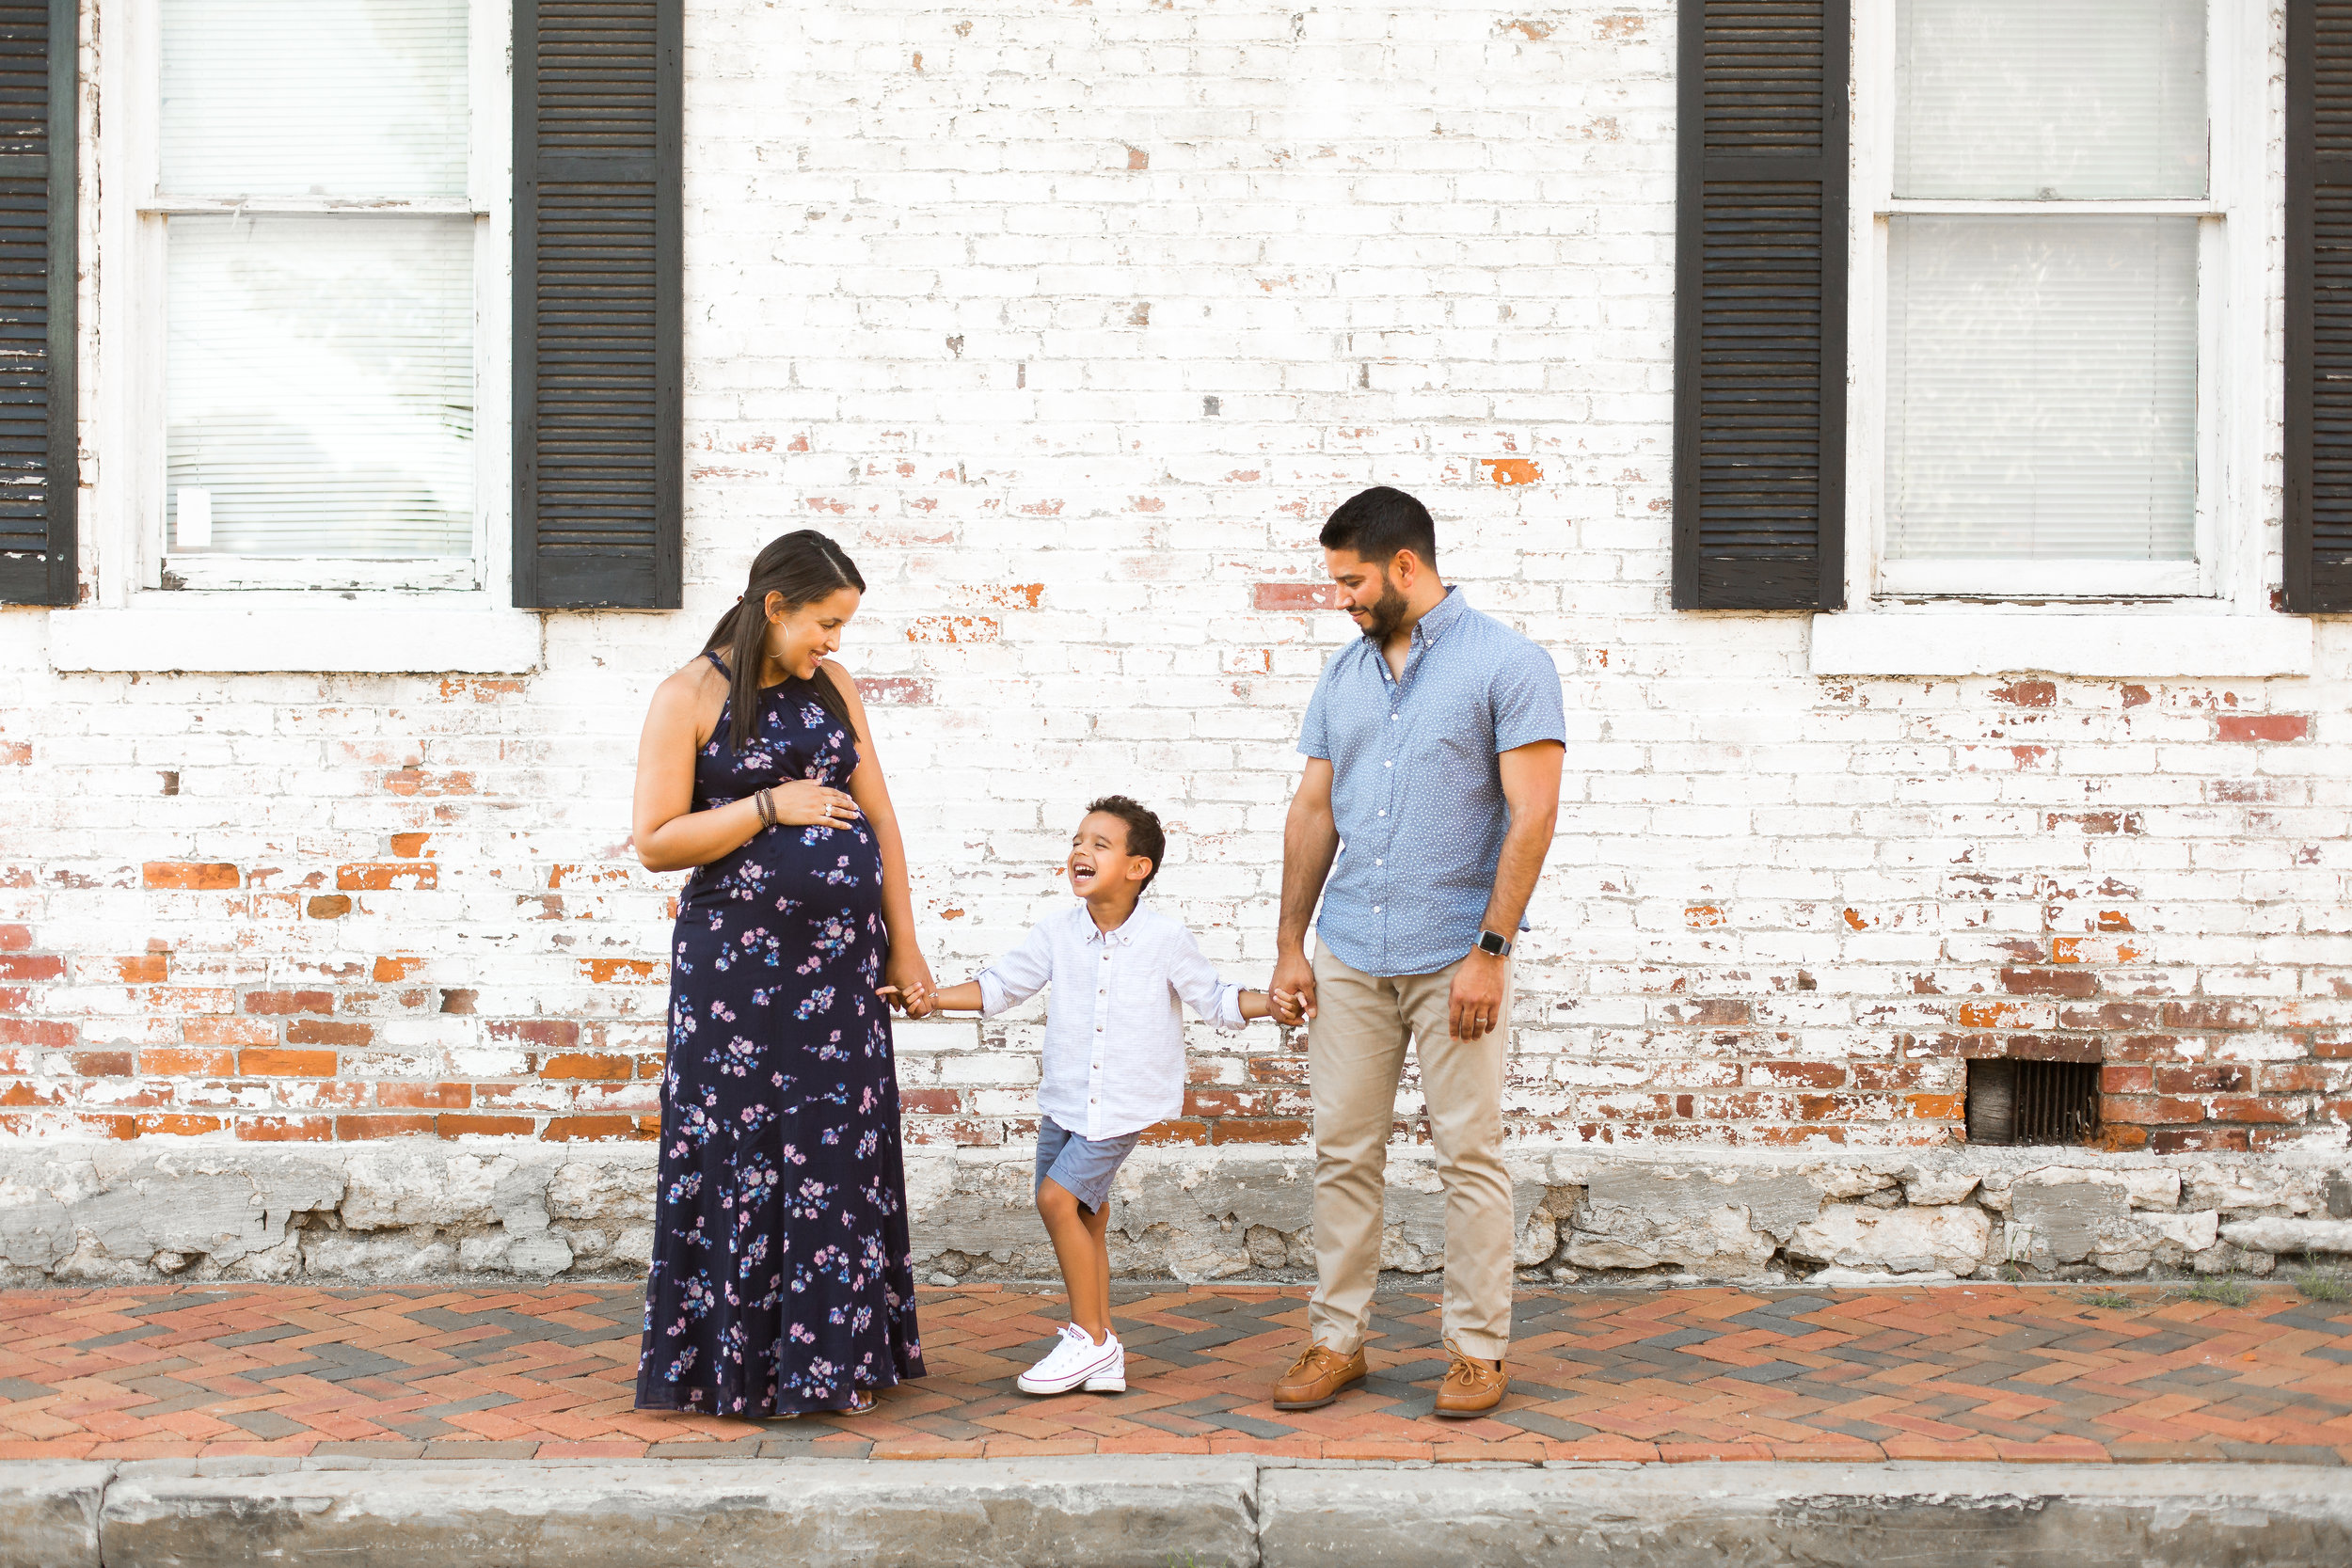 Sarah Cropper Photography is a maternity photographer who specializes in organic, connection-focused portraits of expecting mothers, newborns, babies and families in the Columbus, Ohio area. Sarah focuses on natural colors and real emotions to capture timeless photos that last a lifetime   .